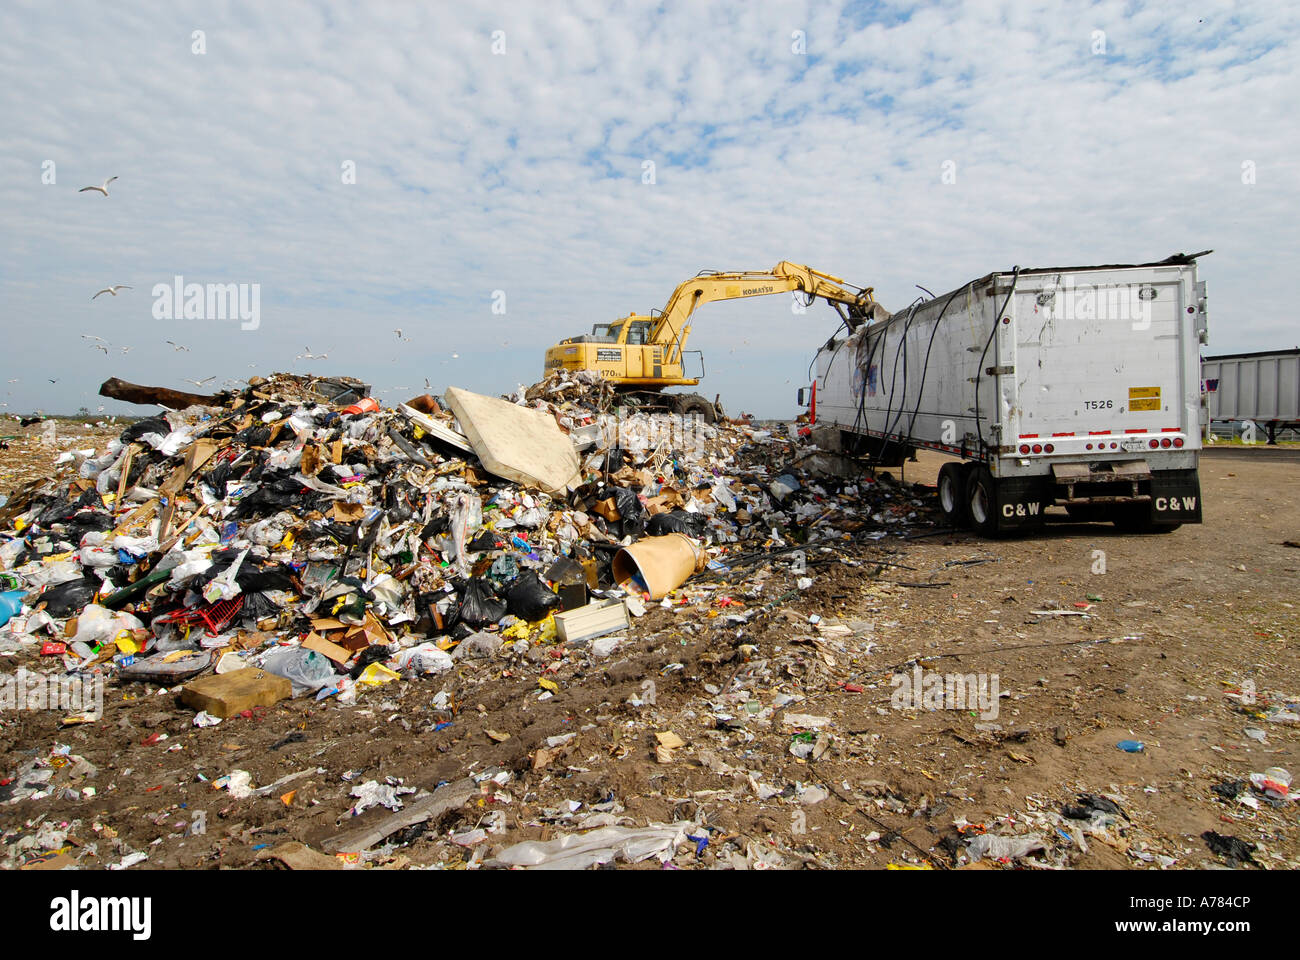 Reduce Reuse Recycle Landfill - Stock Image